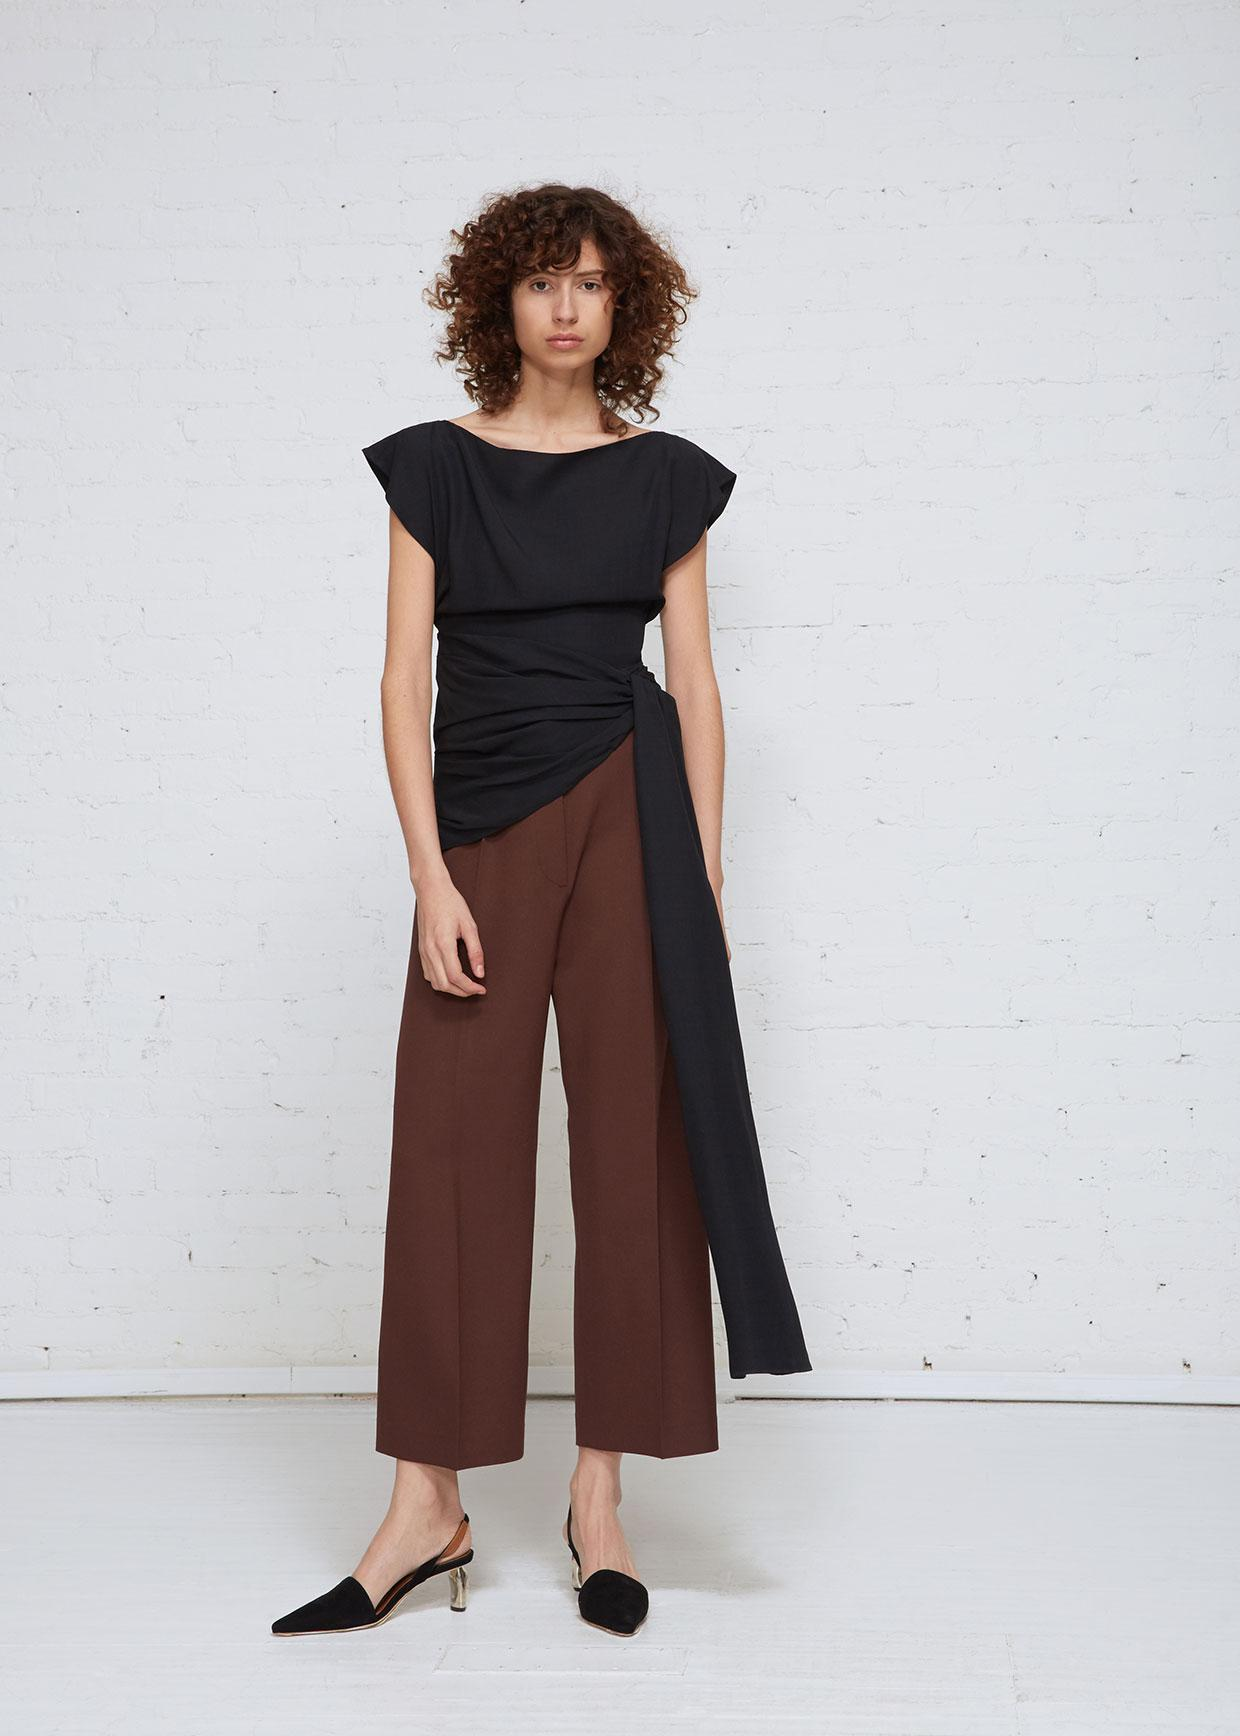 Black Le Haut Espiral Blouse Jacquemus Clearance Popular In China Cheap Price Outlet Clearance Outlet Visit New Cheap Sale Nicekicks 8Lk31D7j